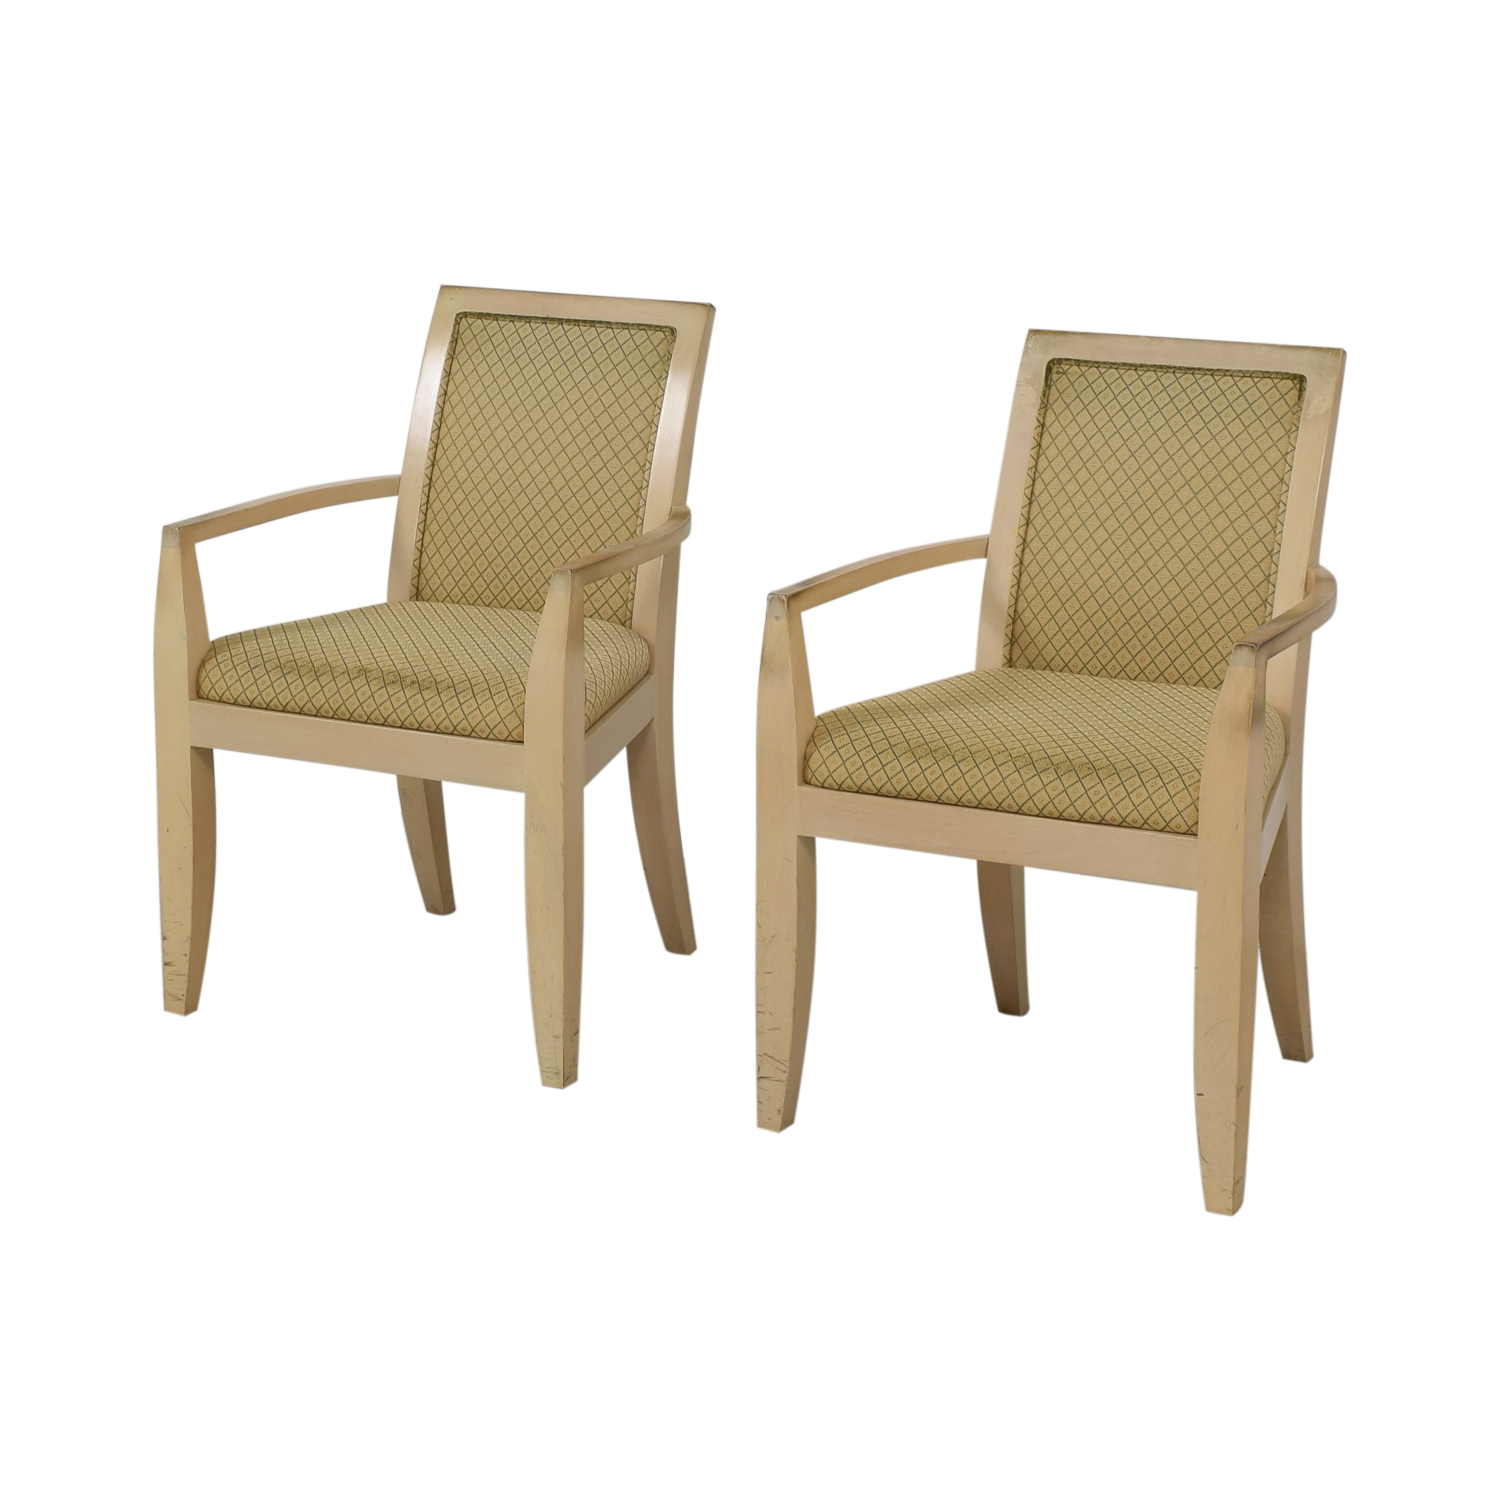 Todd Hase Todd Hase Beige Upholstered Accent Chairs dimensions